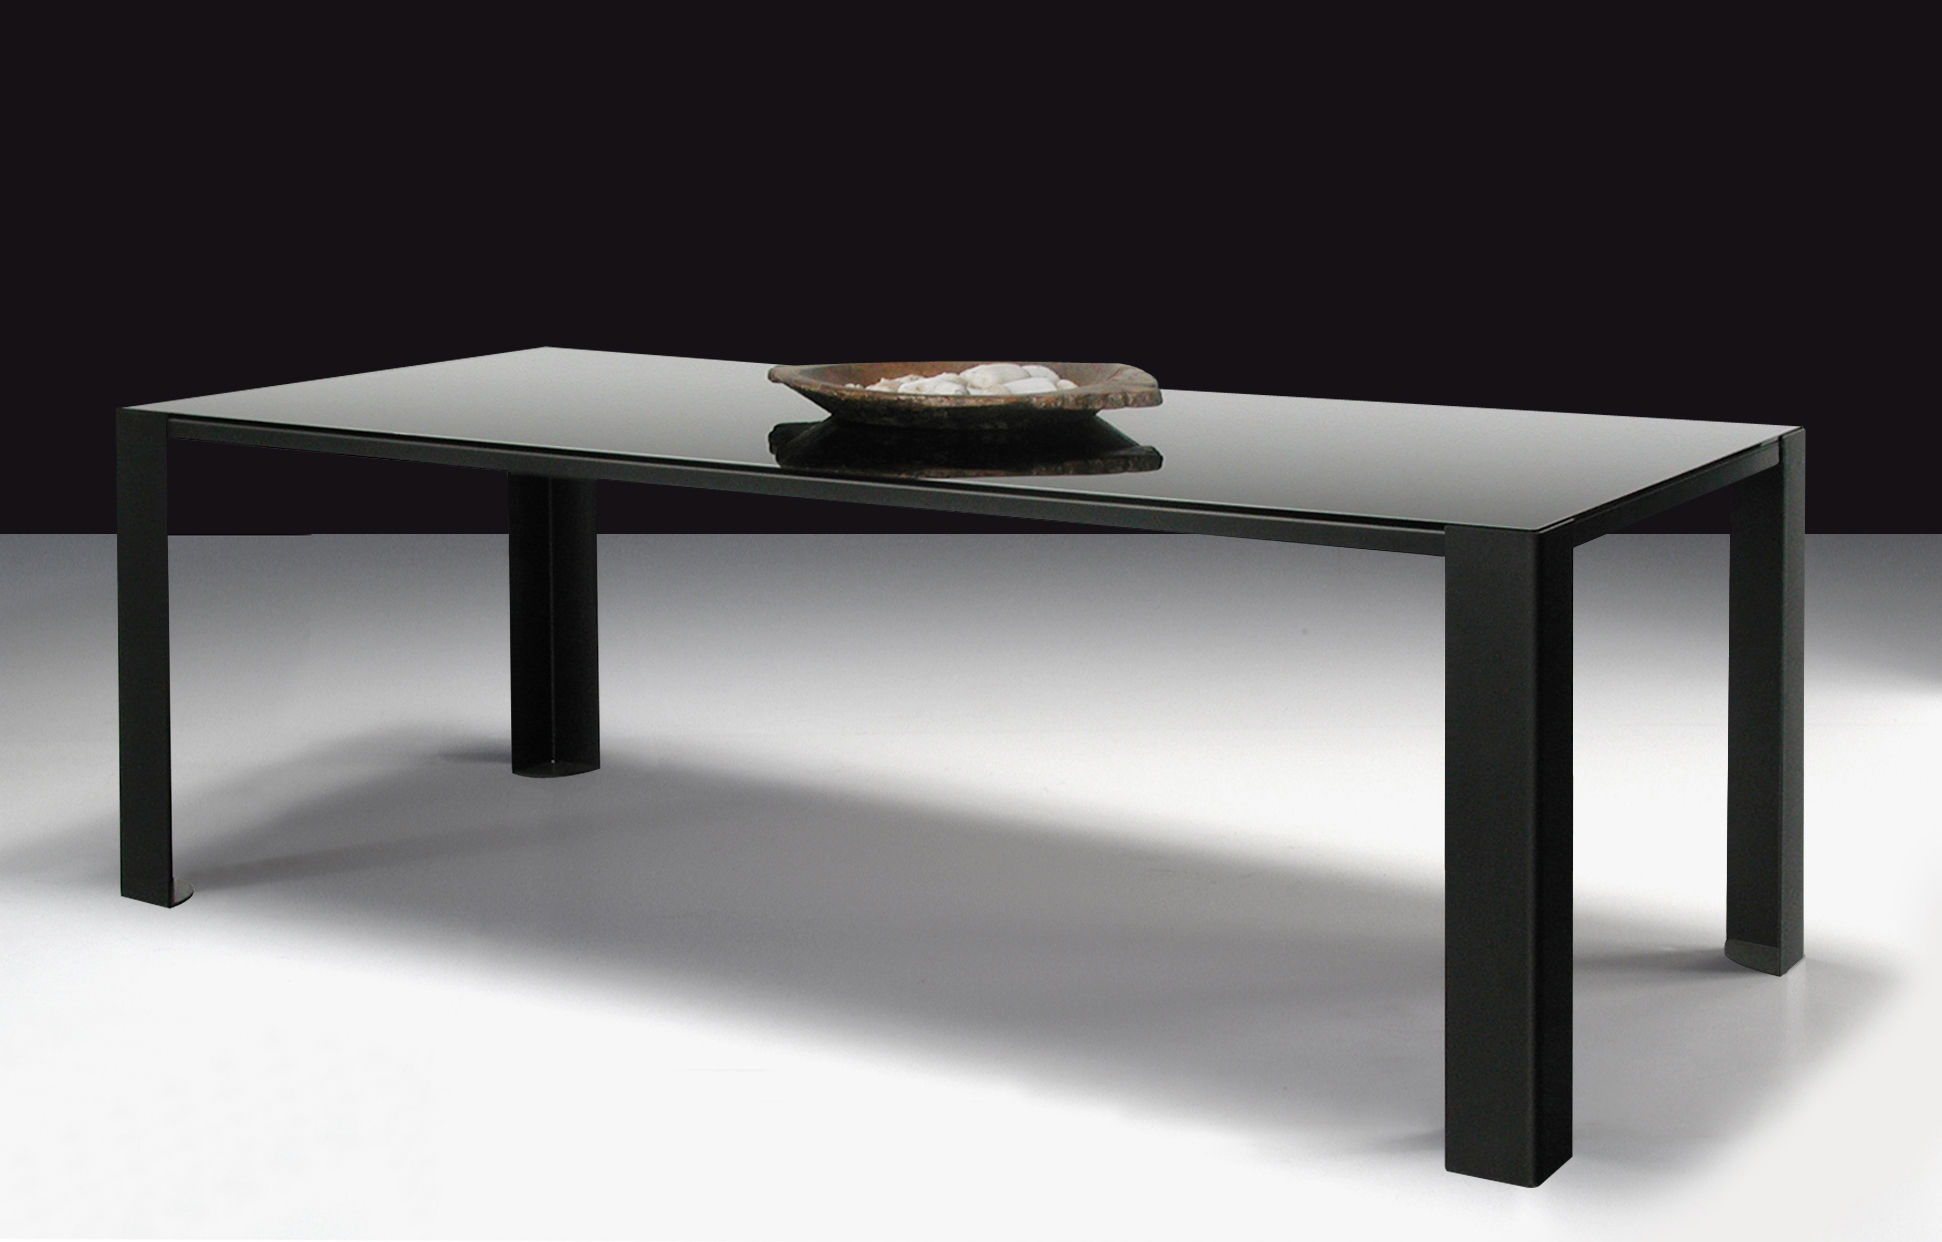 Furniture dining tables big irony black glass table black glass table top